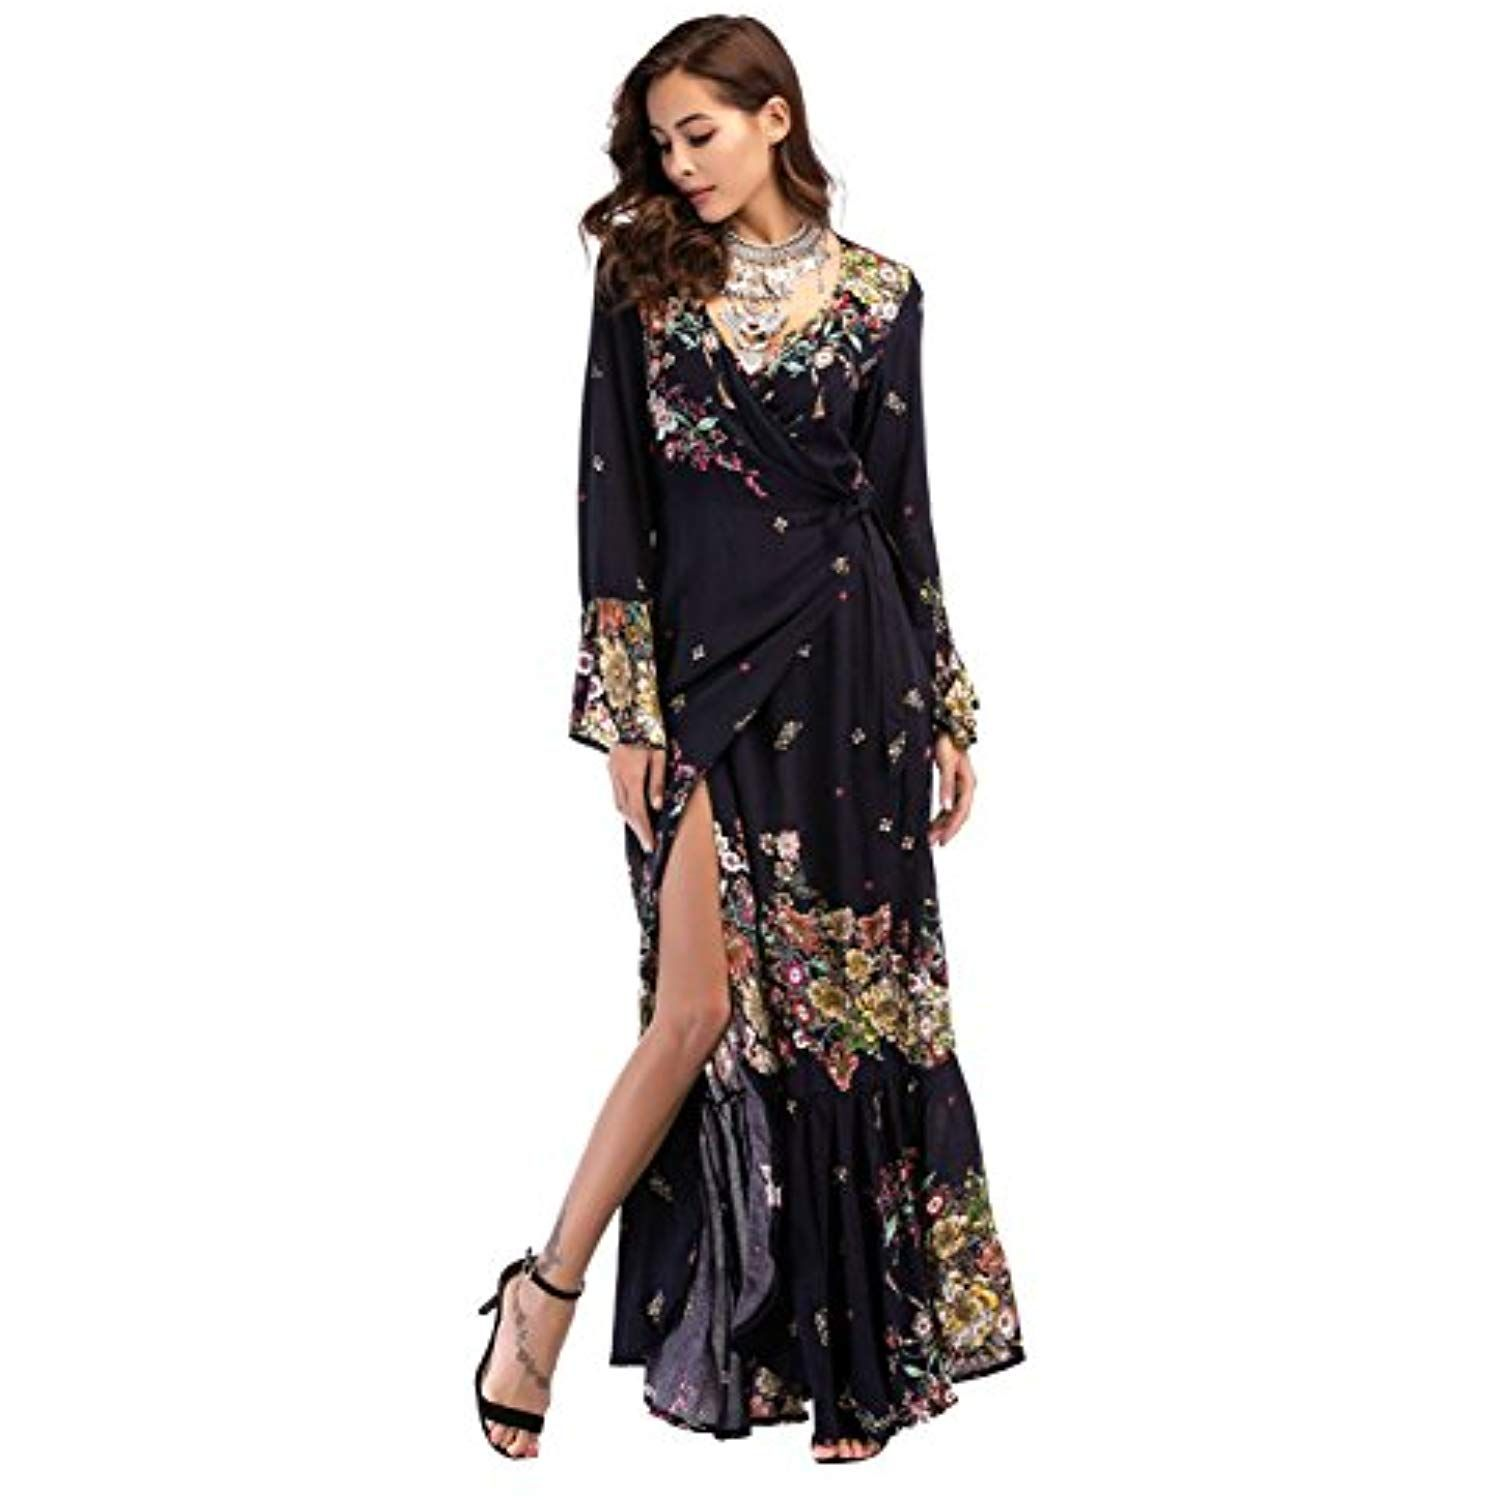 White Chiffon Front Silt Casual Style Backless Halter Top: Women's Print V-Neck Long Sleeve Chiffon Beach Maxi Wrap